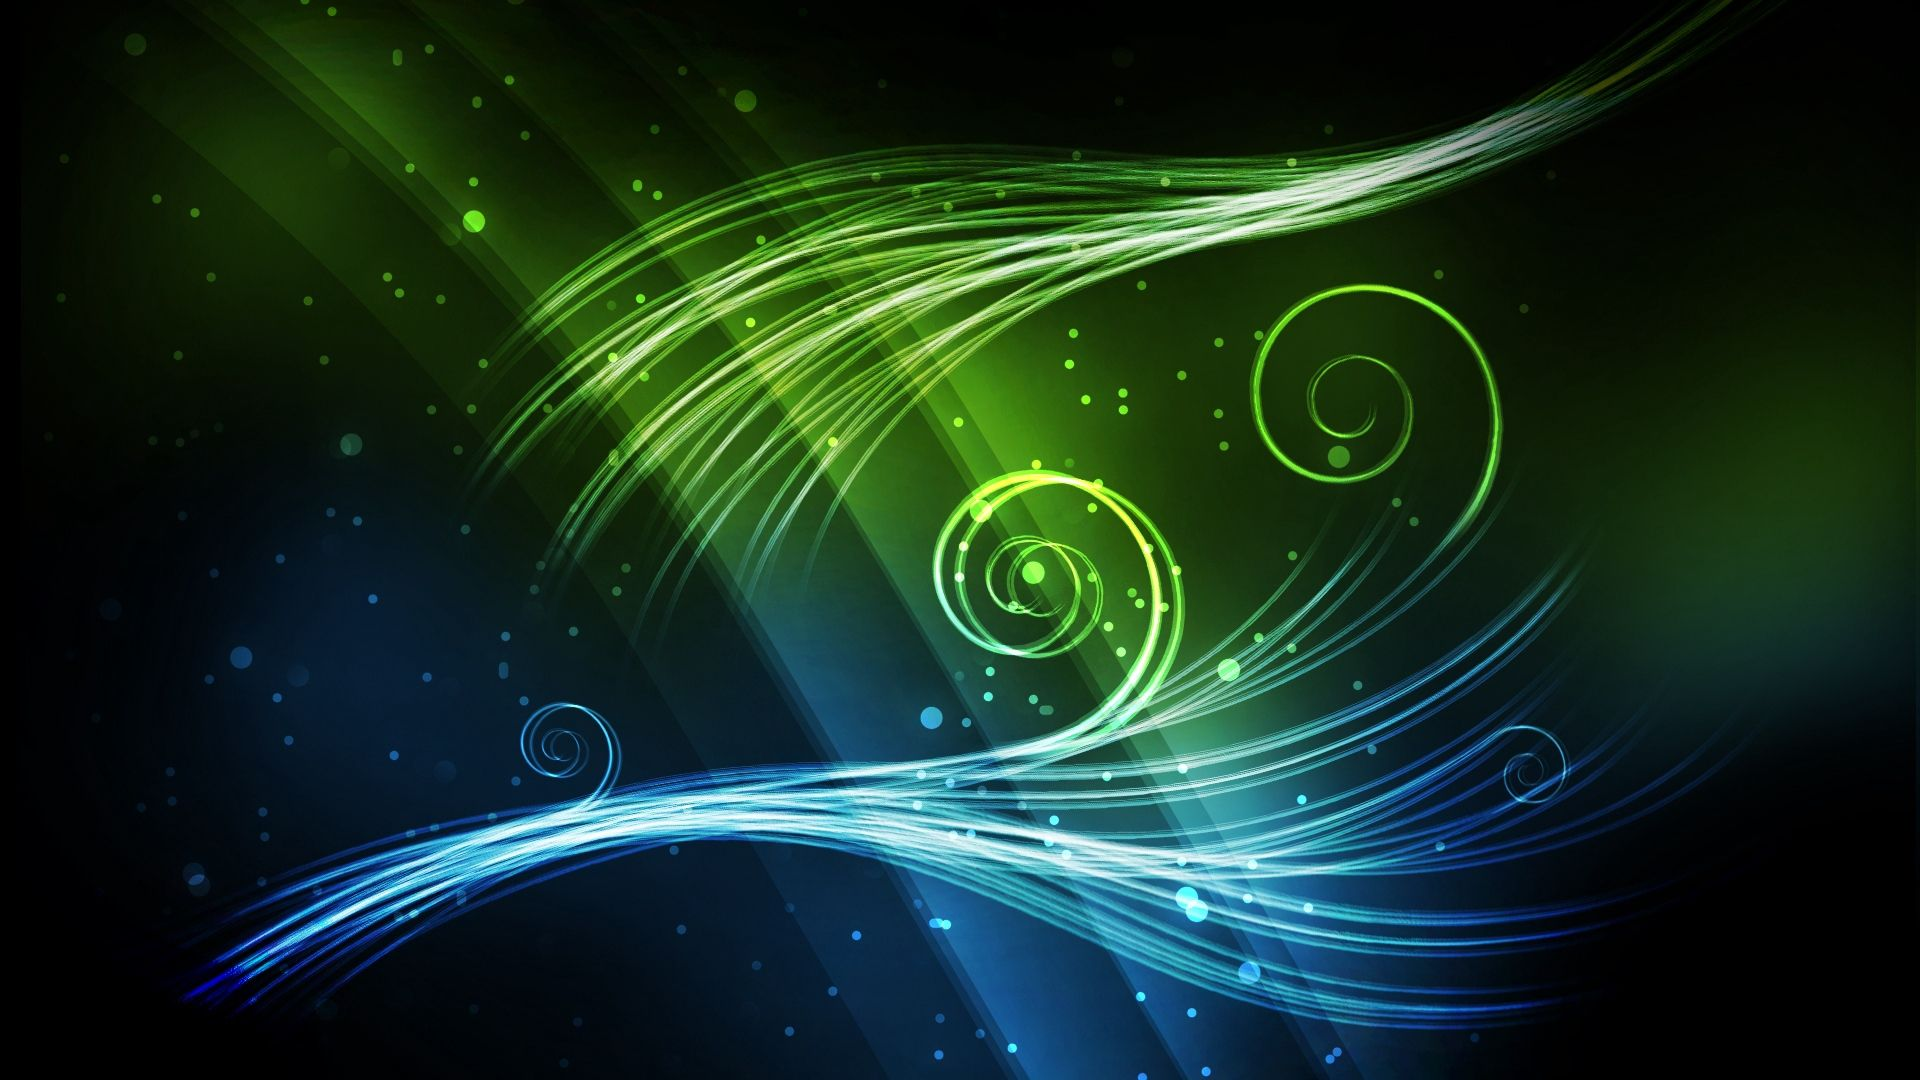 Cool Green 1080p background